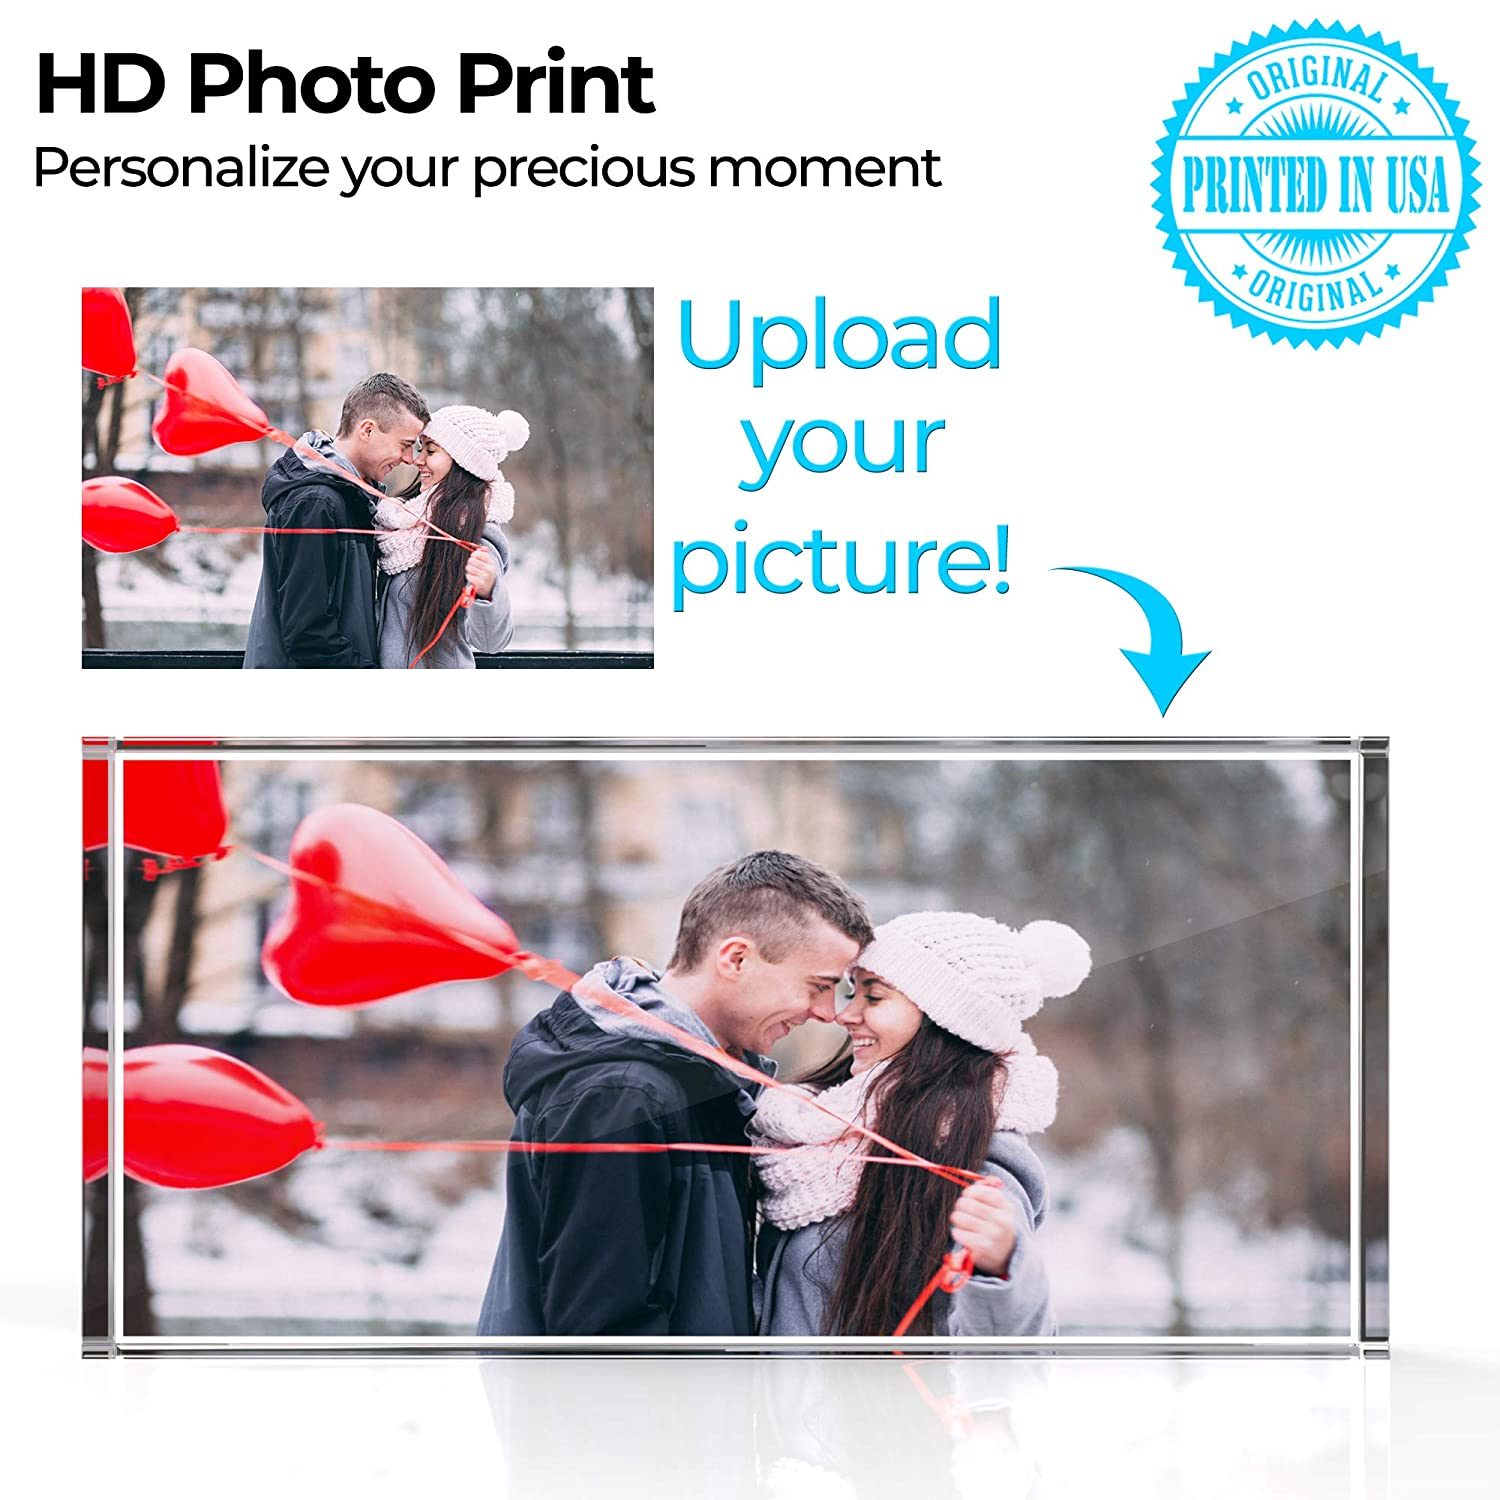 Personalized Photo, Custom Photo, Name Tag Plate with Clear 3D Effect Create Your OWN for Home Office Kitchen Gift Best Gifts for Wedding and Anniversary (4 Color Process)